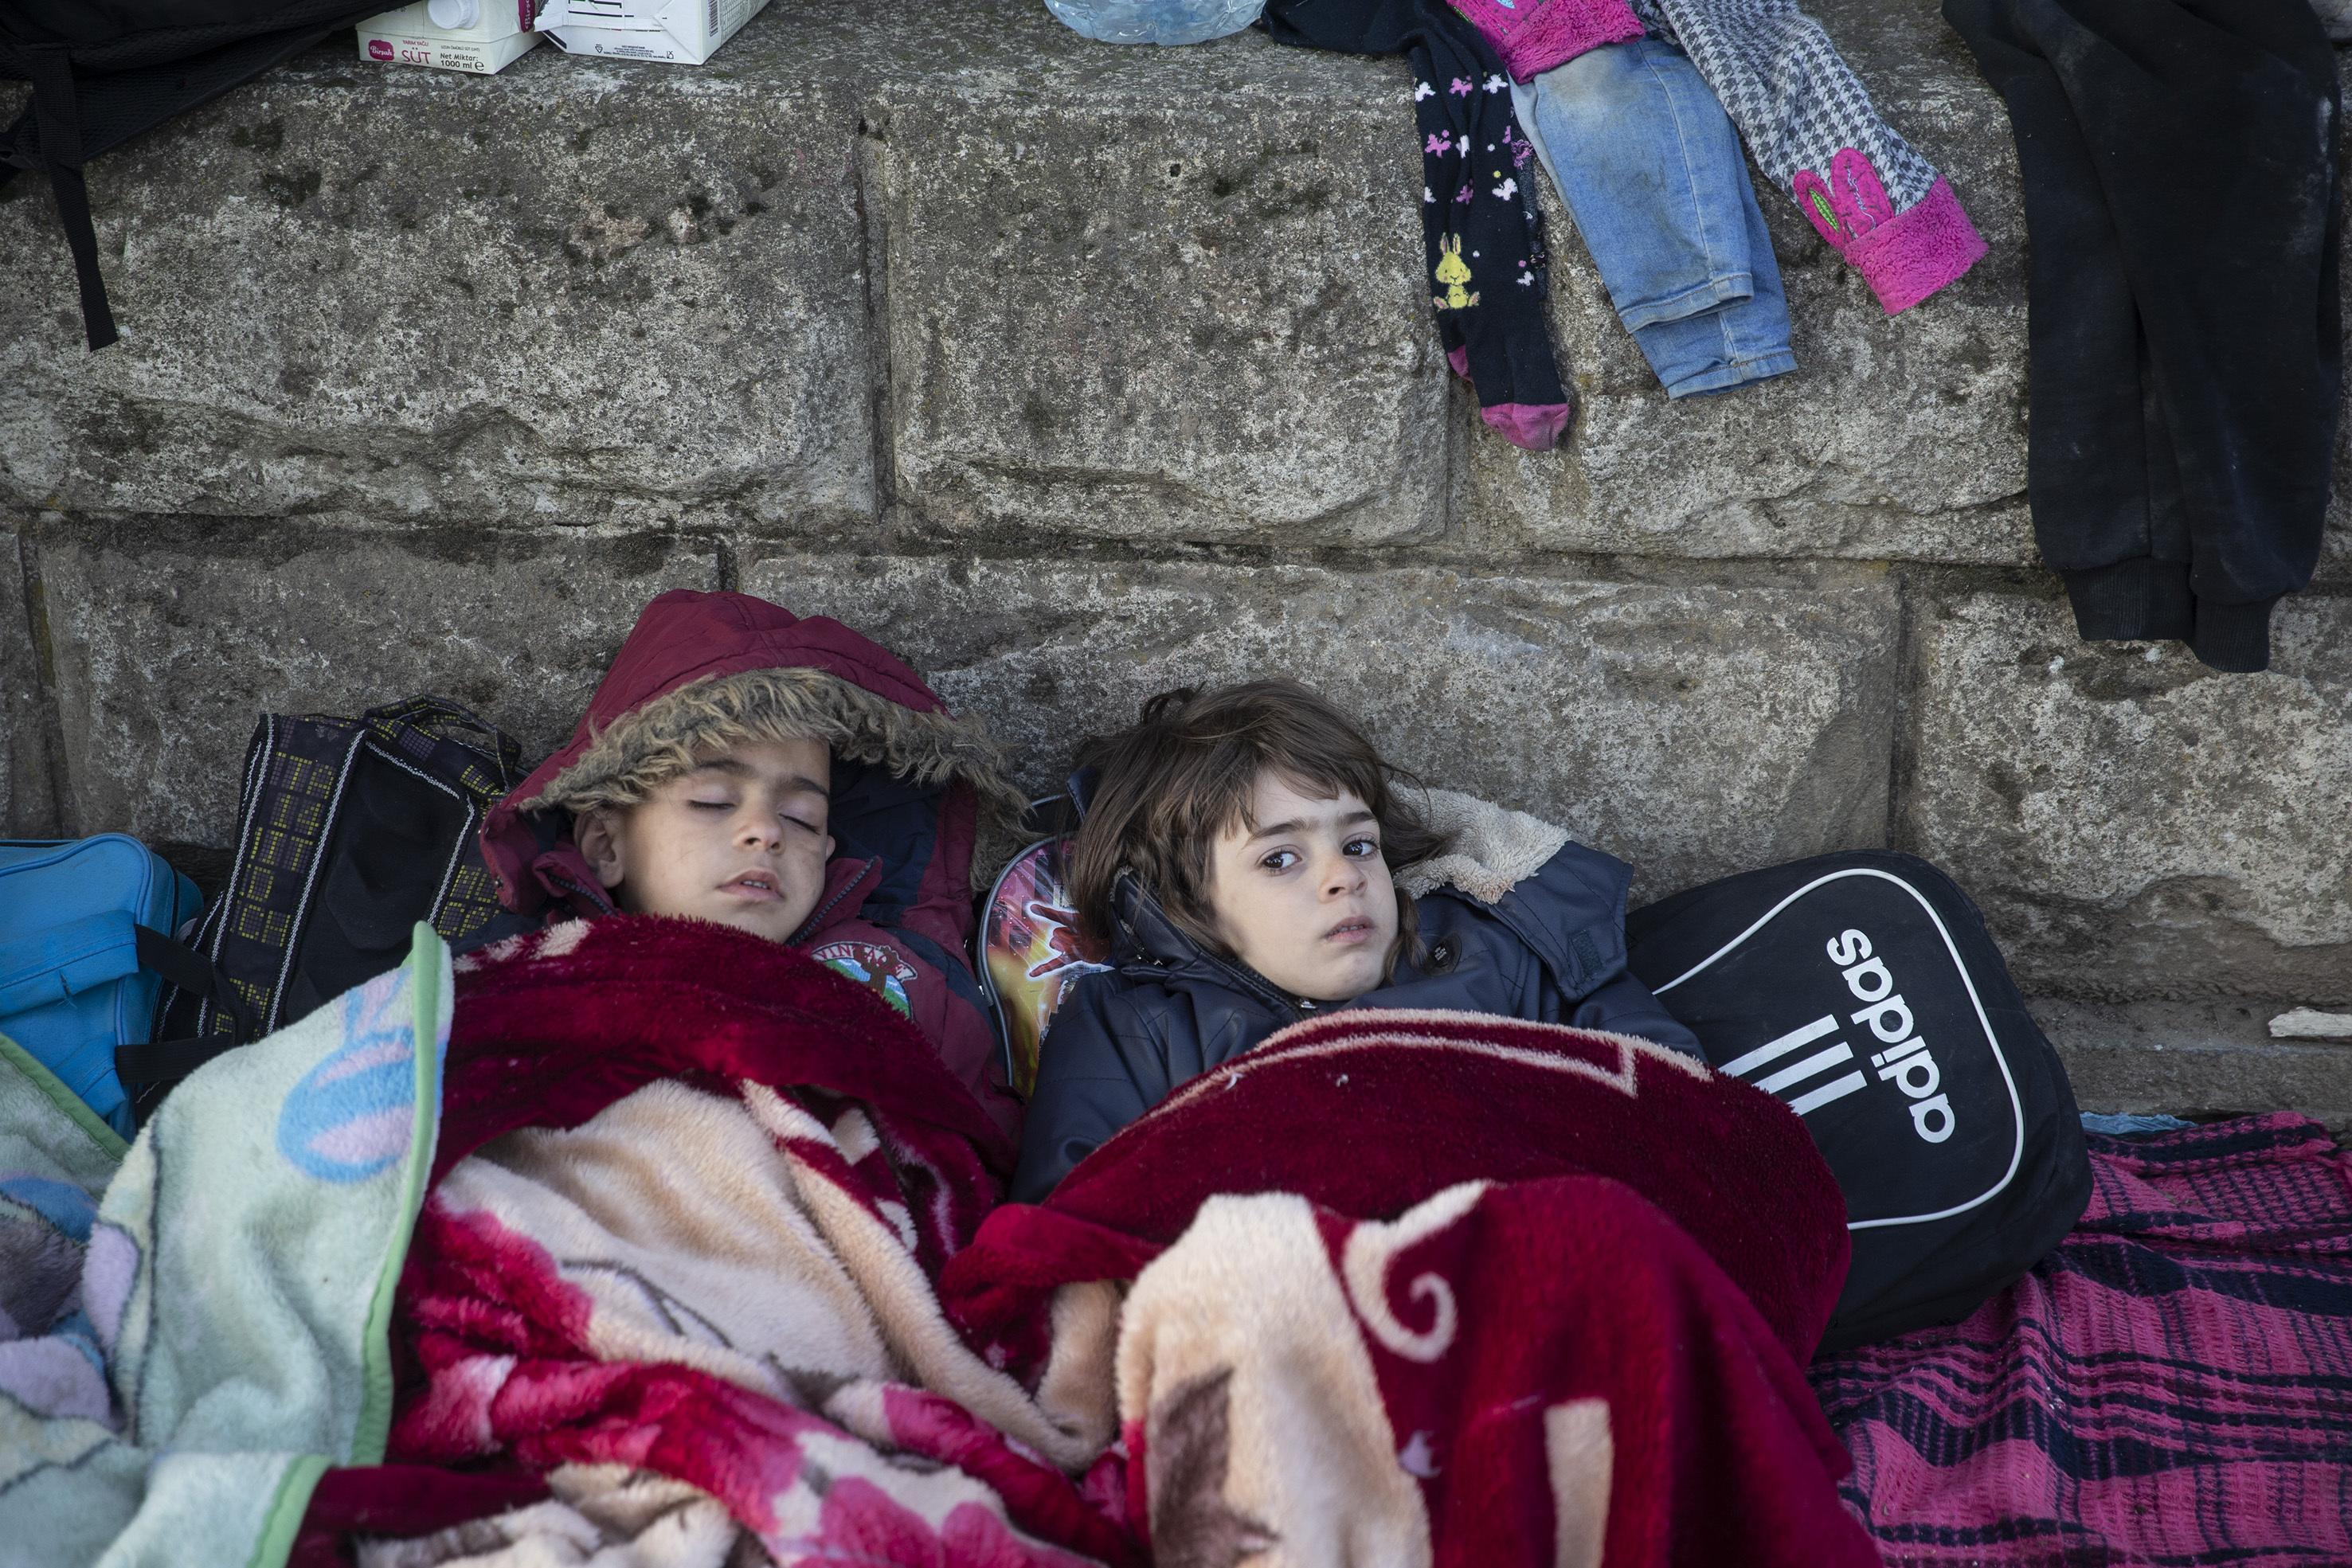 EDIRNE, TURKEY - MARCH 02: An irregular migrant child wakes up beside a sleeping child as they continue to flock at the Pazarkule Border Gate in Karaagac neighbourhood in Edirne, Turkey to reach Greece on March 02, 2020. The number of irregular migrants leaving Turkey for Europe has reached 117,677 on Monday, Turkish Interior Minister Suleyman Soylu said on Twitter. The migrants are leaving Turkey through northwestern Edirne province bordering Greece and Bulgaria. Thousands of migrants flocked to Edirne's Pazarkule border crossing to Greece after Turkish officials announced Friday they would no longer try to stop irregular migrants from reaching Europe (Photo by Gokhan Balci/Anadolu Agency via Getty Images)